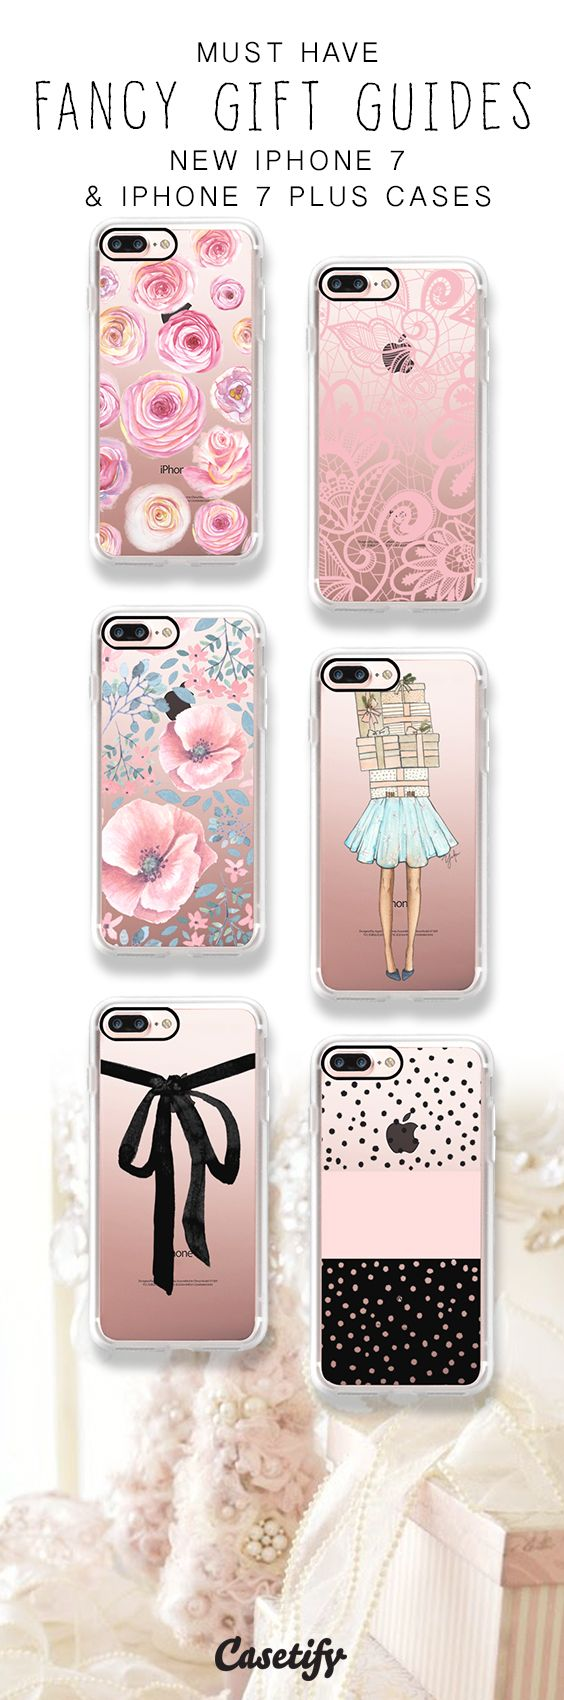 Know someone fancy? Check out the Must Have Fancy Gift Guides here > https://www.casetify.com/artworks/CjTN3AnhUD